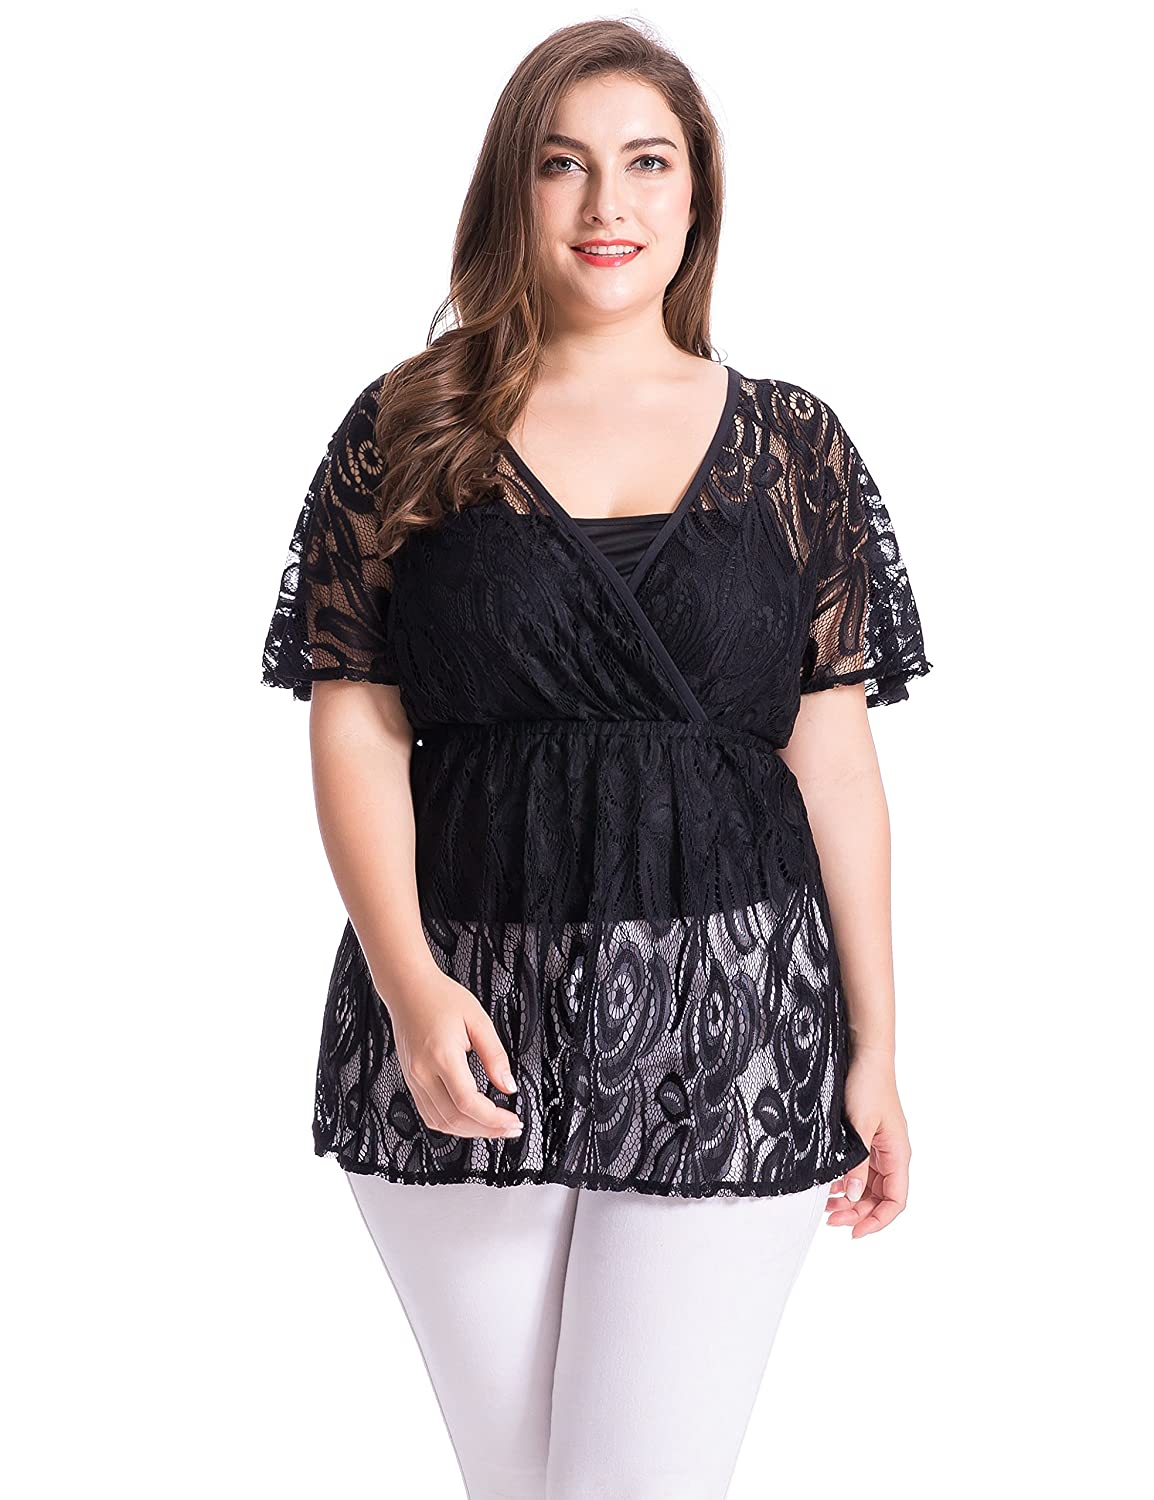 e29ede65d018b Chicwe Women s Plus Size Floral Lace Top Blouse with Jersey Cami at Amazon  Women s Clothing store